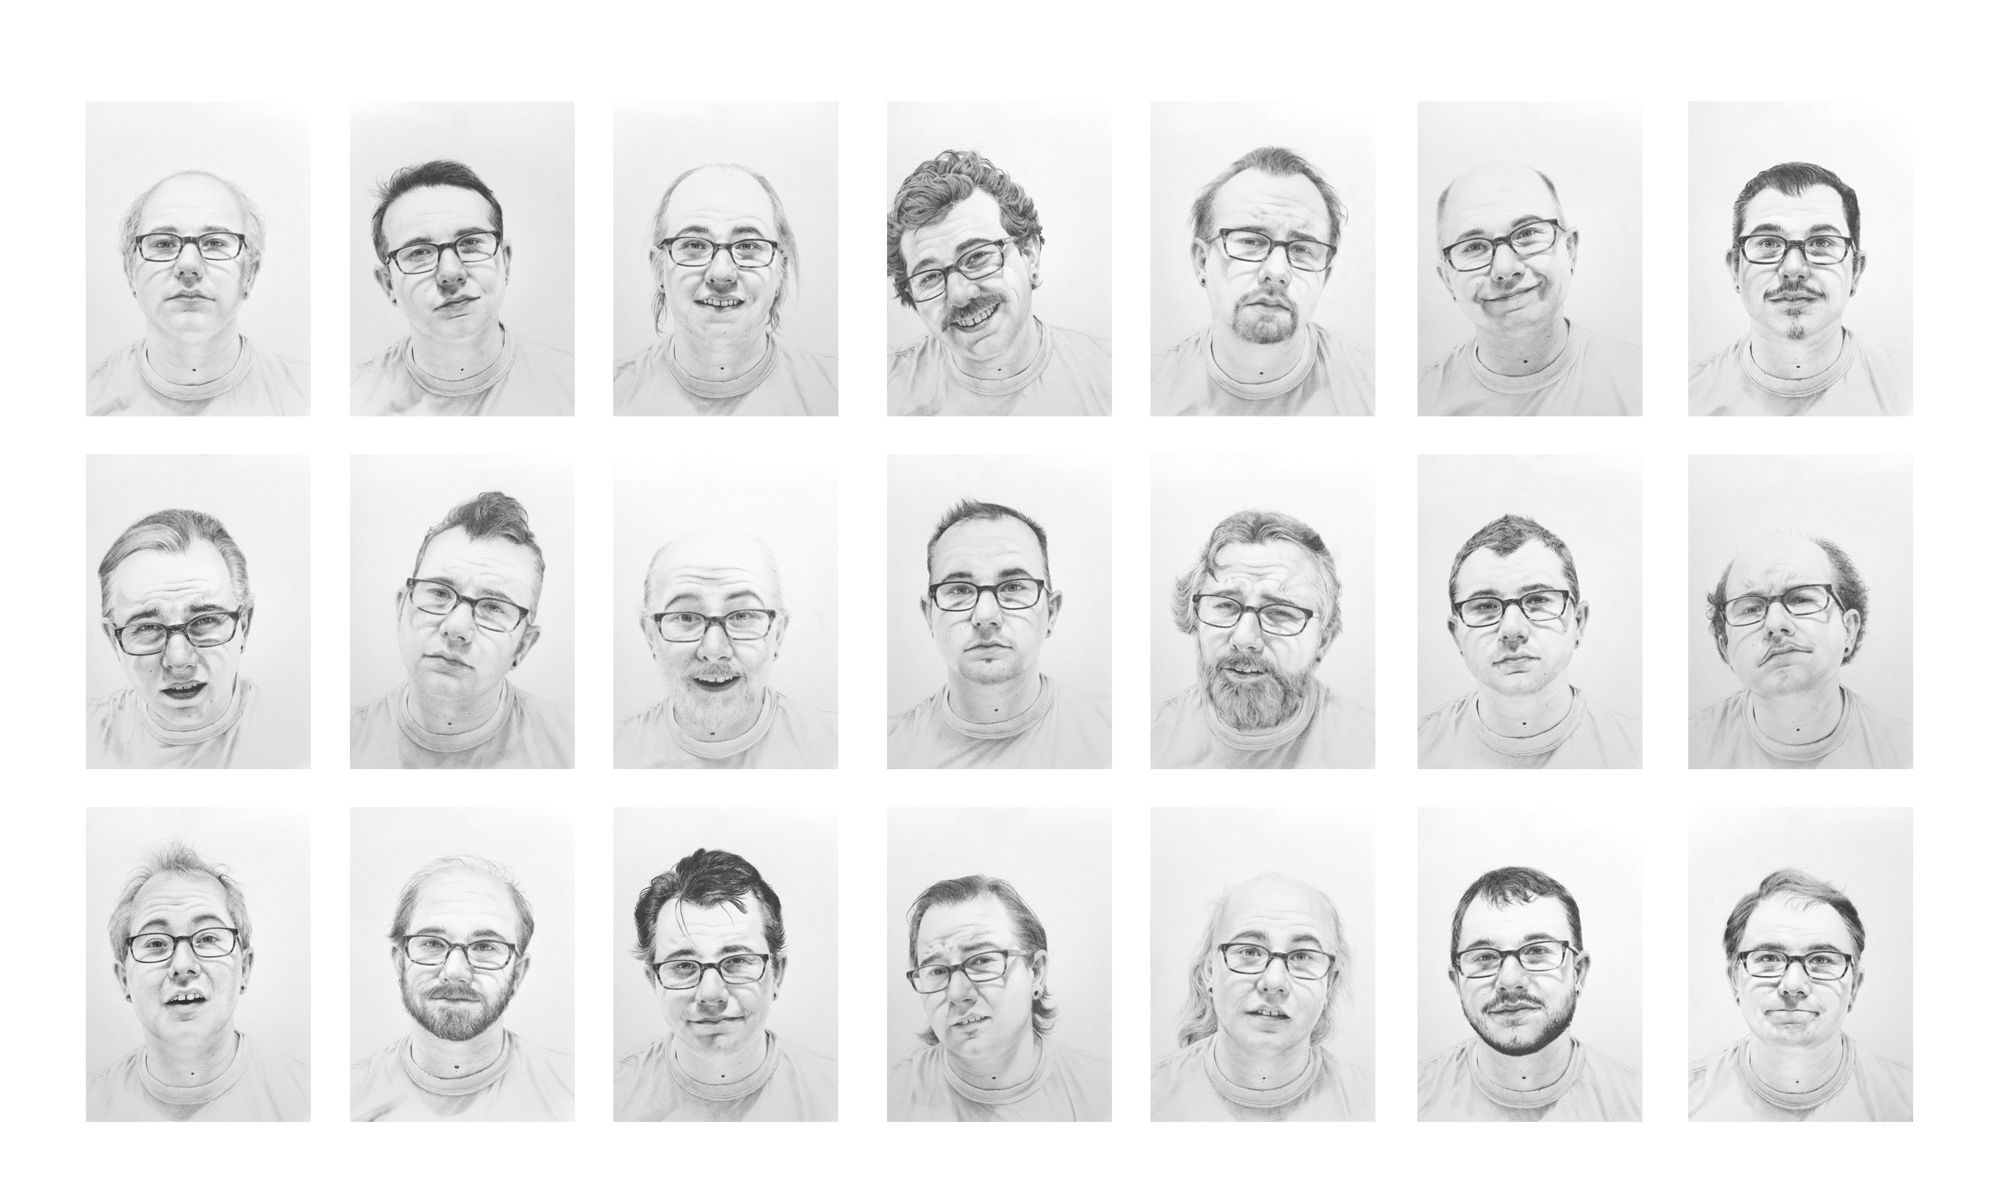 """Untitled (Balding), Graphite on paper, 21 drawings at 7""""x5"""" each, 2017"""